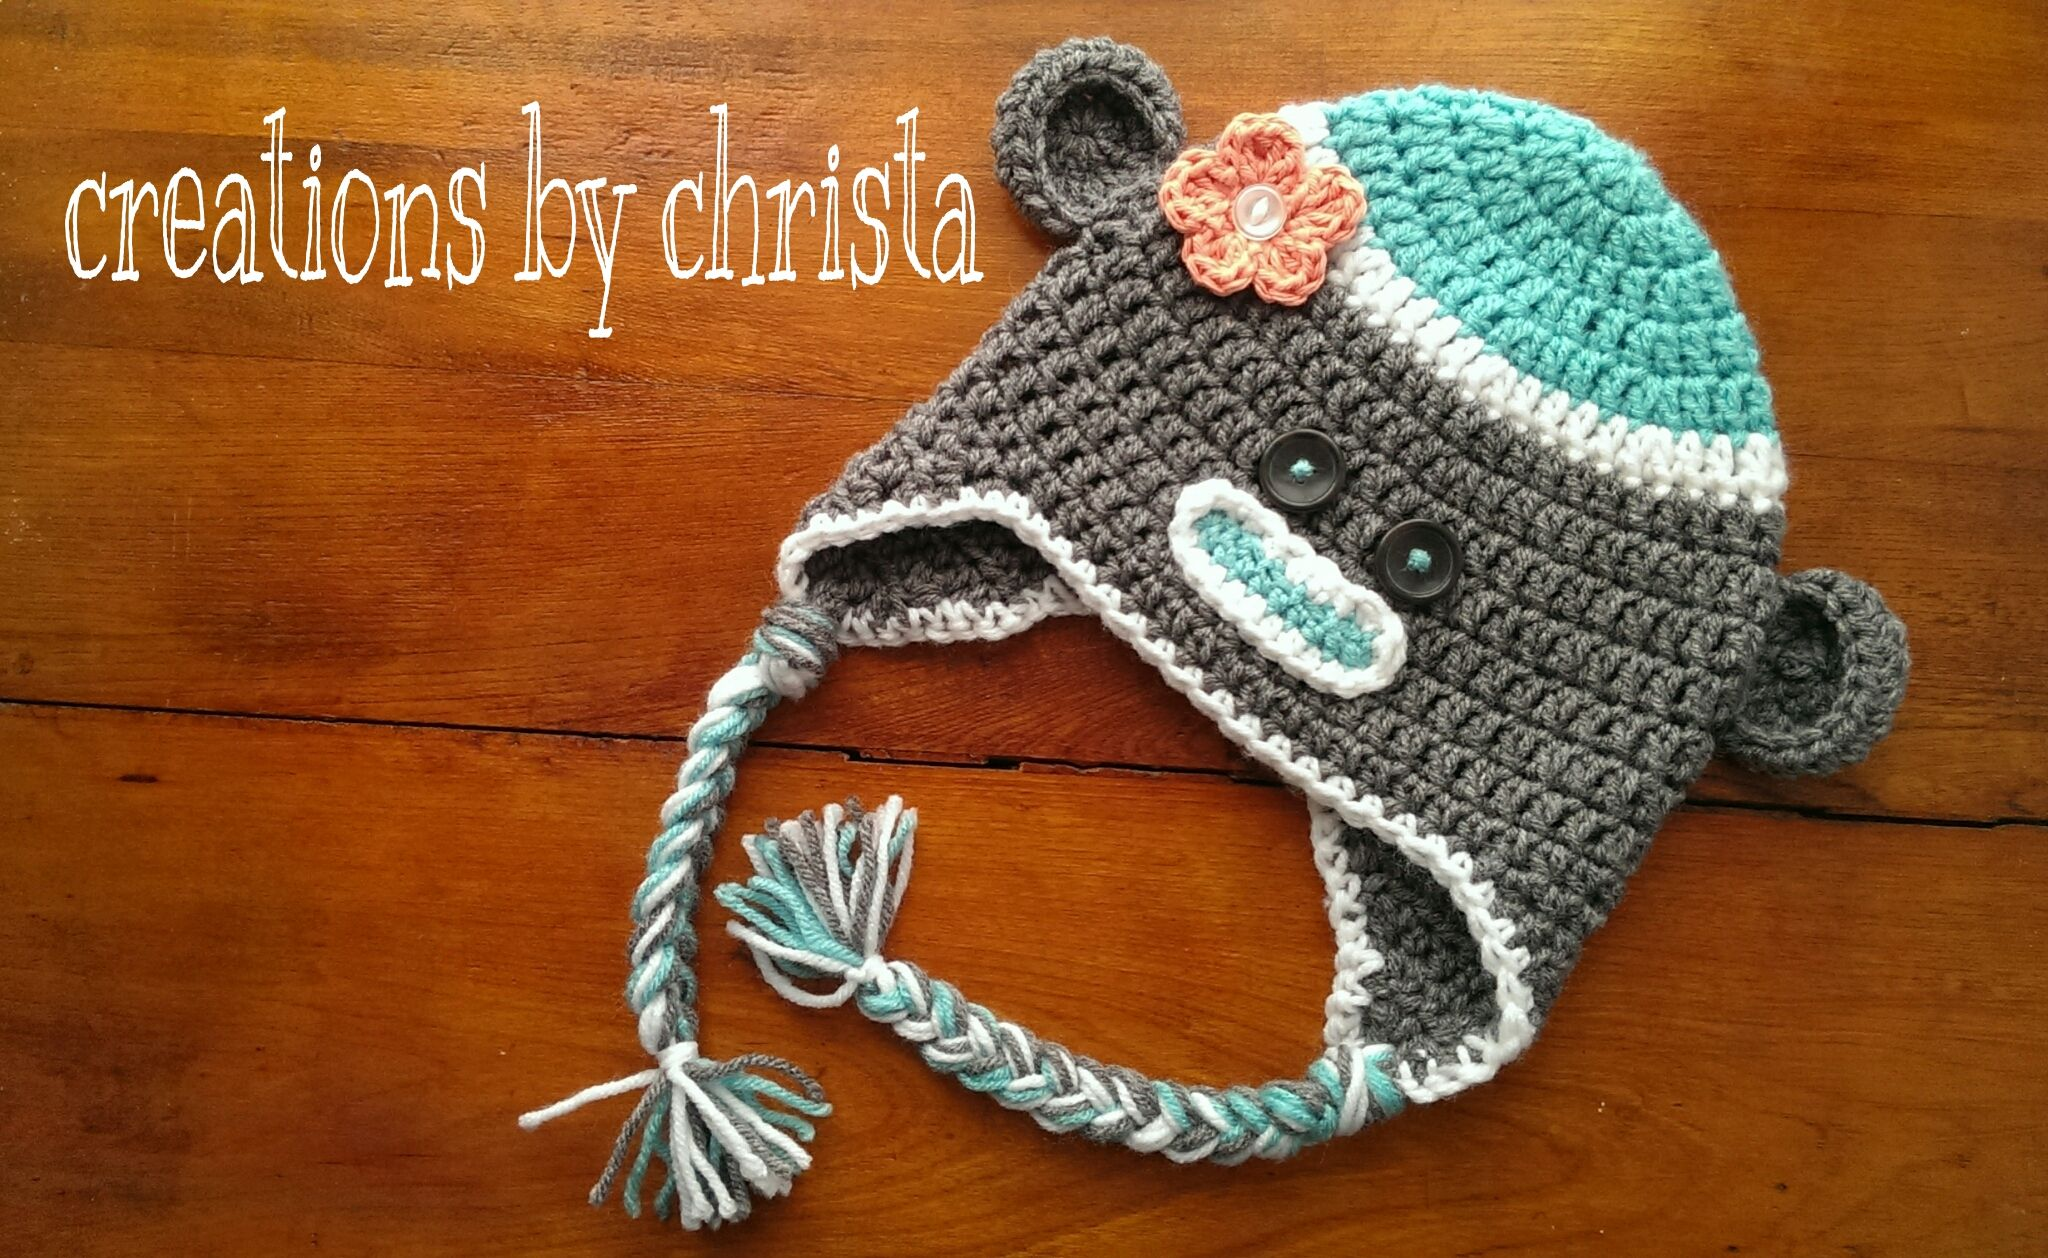 Sock Monkey crochet hat.  Main hat free pattern used courtesy of Repeat Crafter Me Owl hat pattern: http://www.repeatcrafterme.com/2012/09/crochet-owl-hat-pattern-in-newborn.html Monkey details courtesy of Daisy Cottage Designs free pattern: http://www.daisycottagedesigns.net/2013/04/free-sock-monkey-crochet-pattern.html